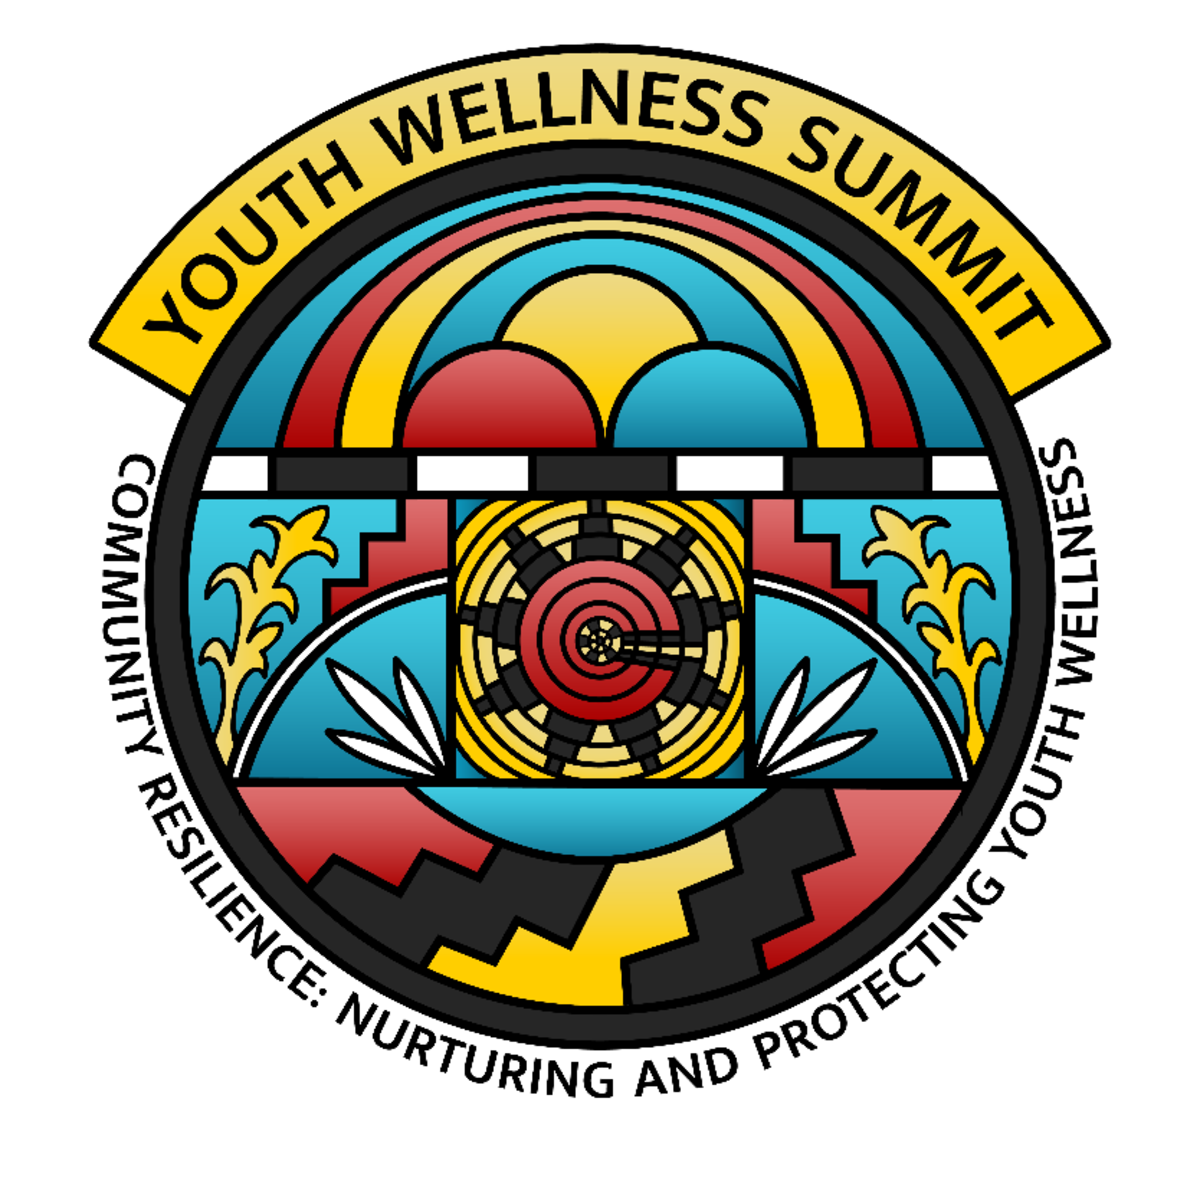 Pictured: The 2021 Indigenous Youth Wellness Summit logo.